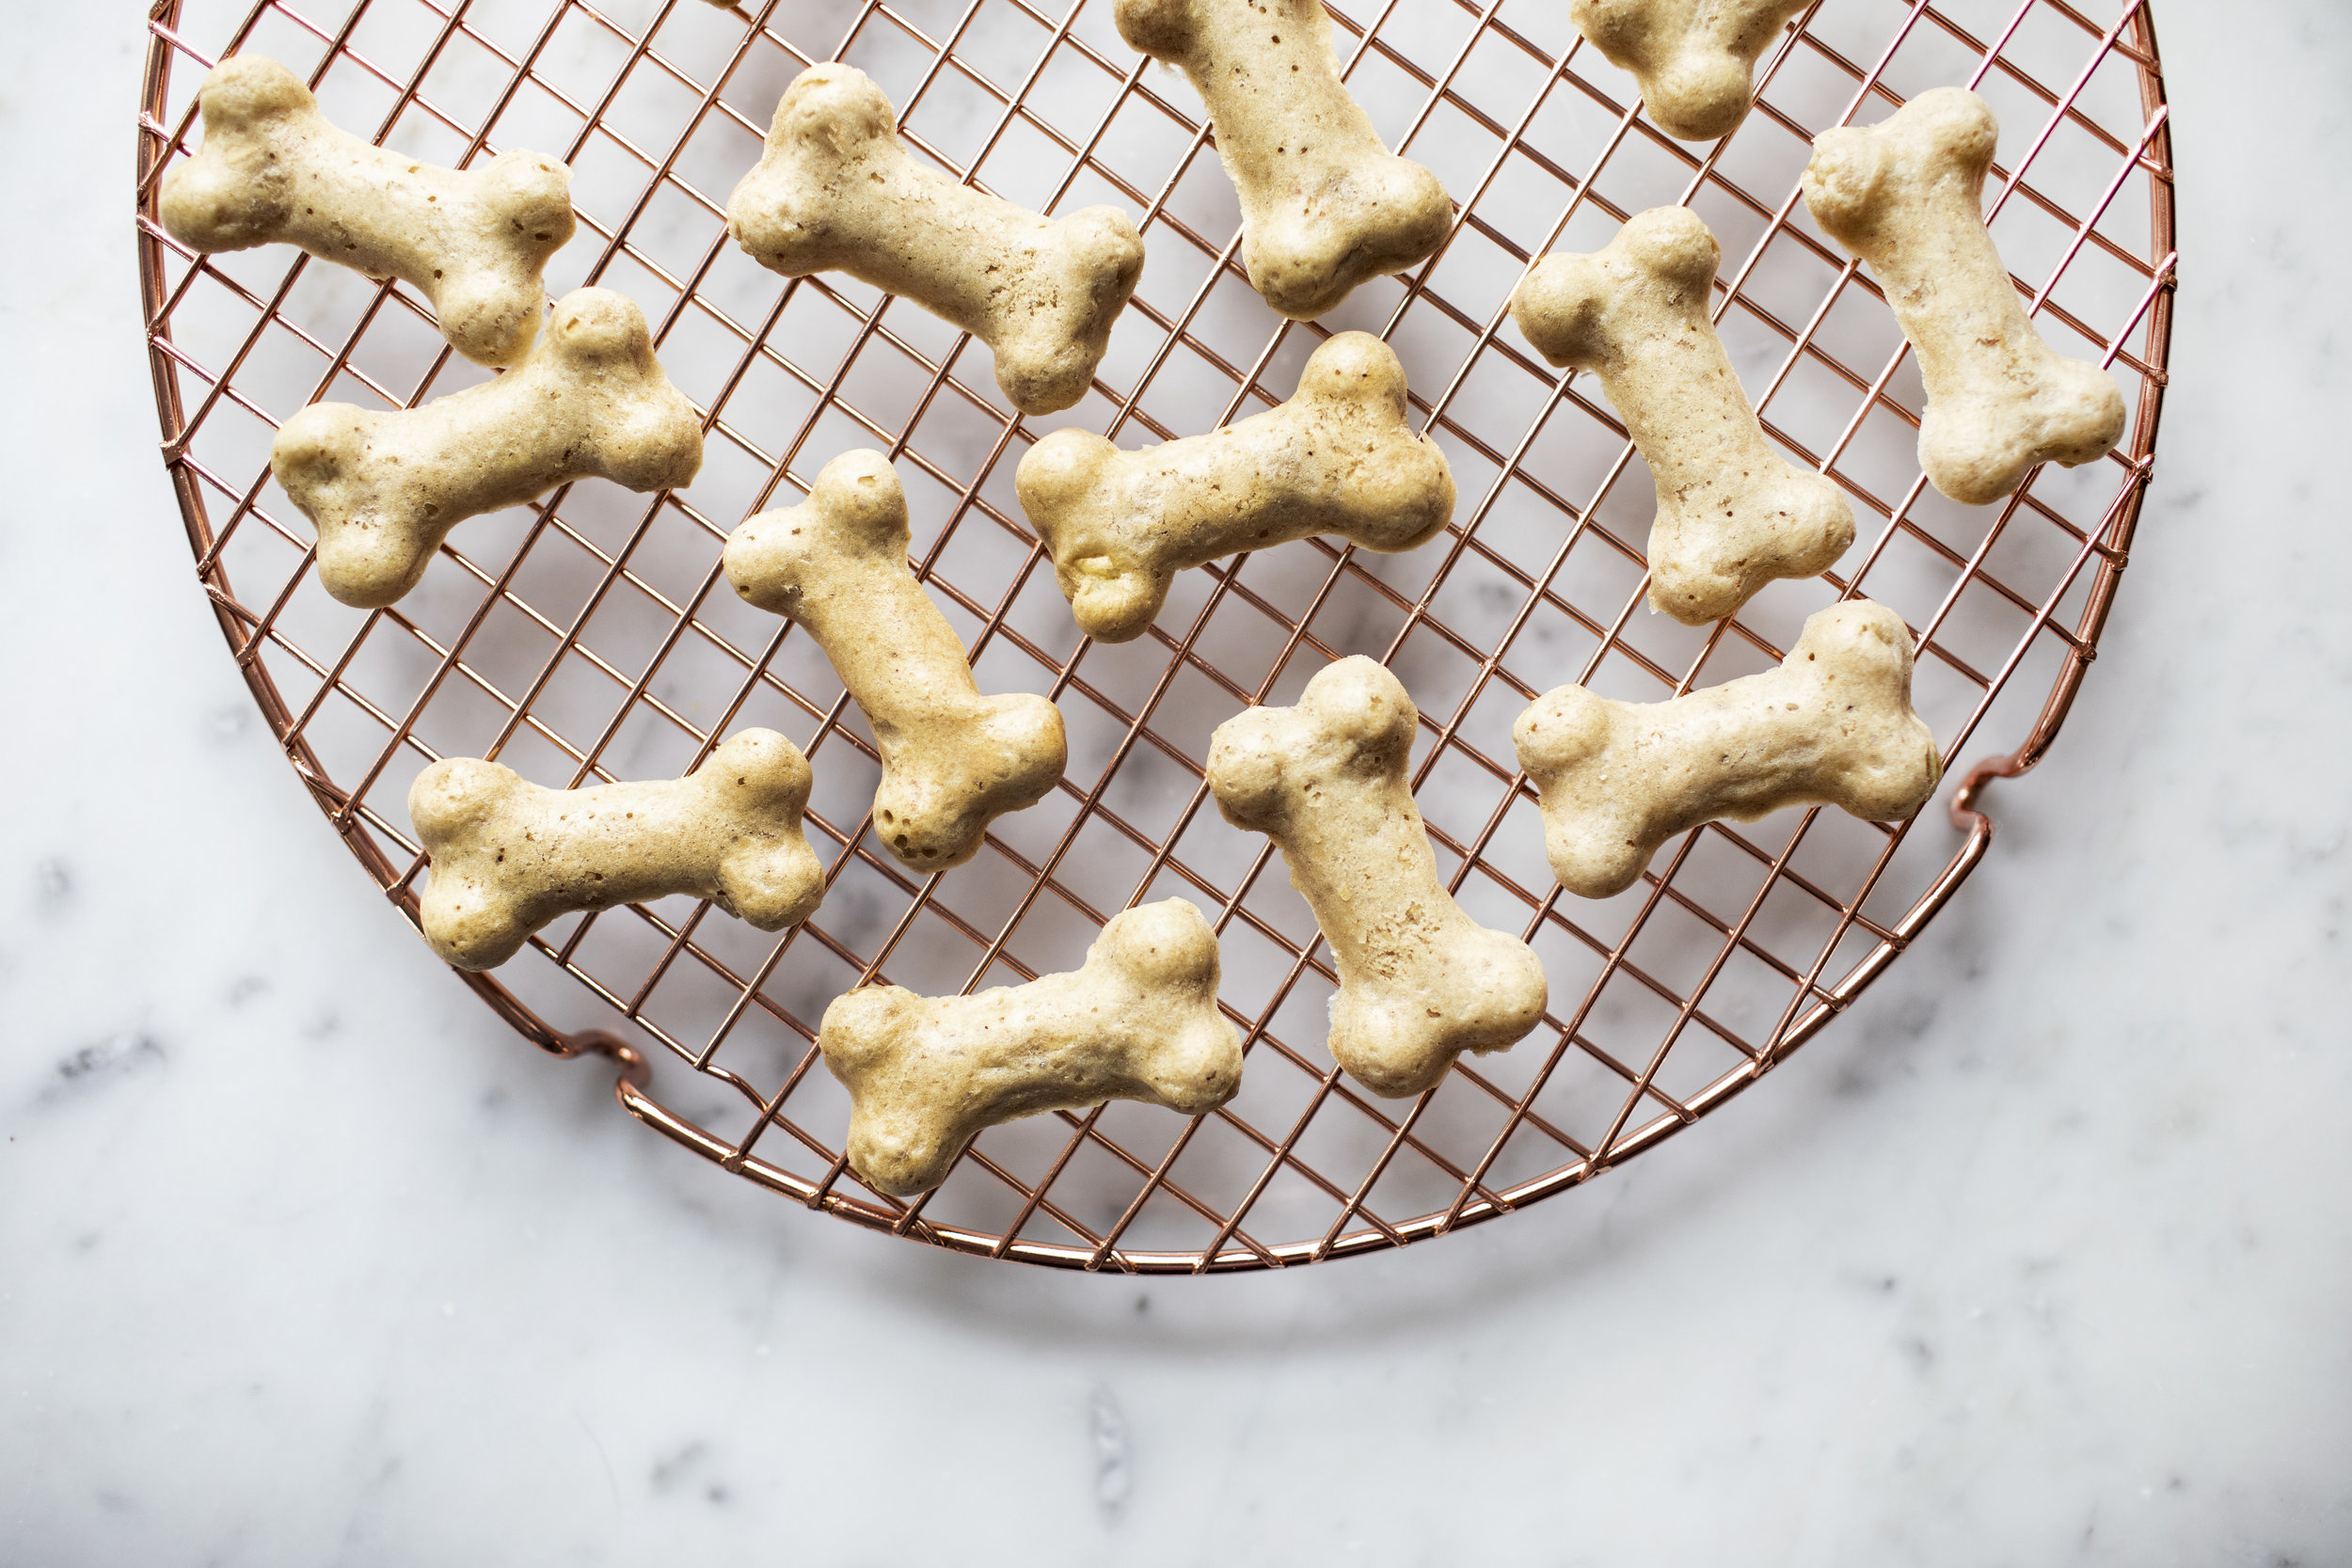 peanut butter banana dog treats ii.jpg